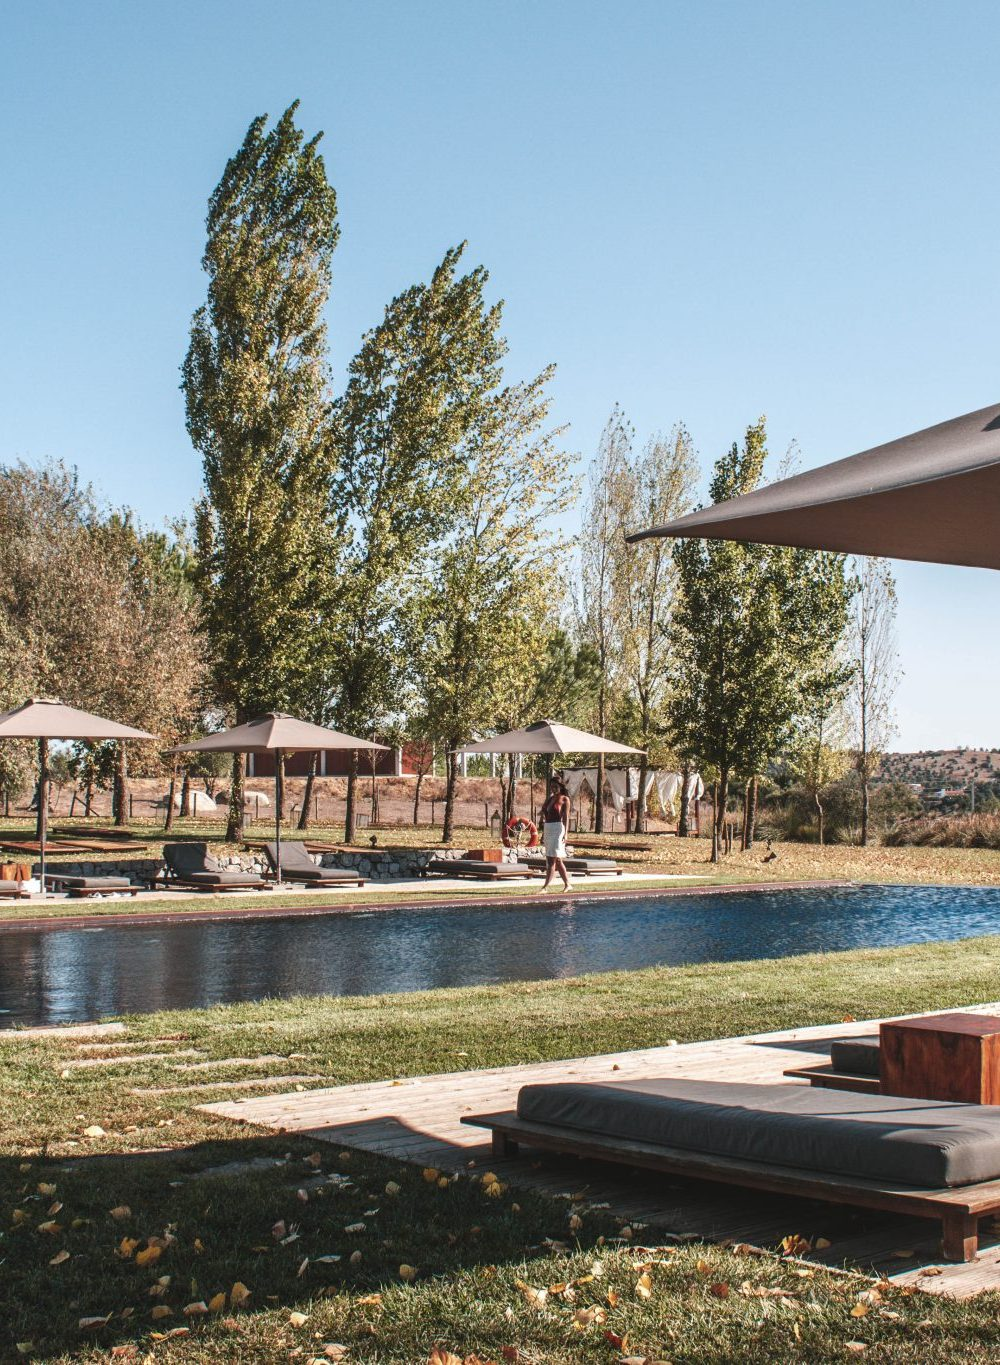 L'and Vineyards review do melhor hotel no Alentejo